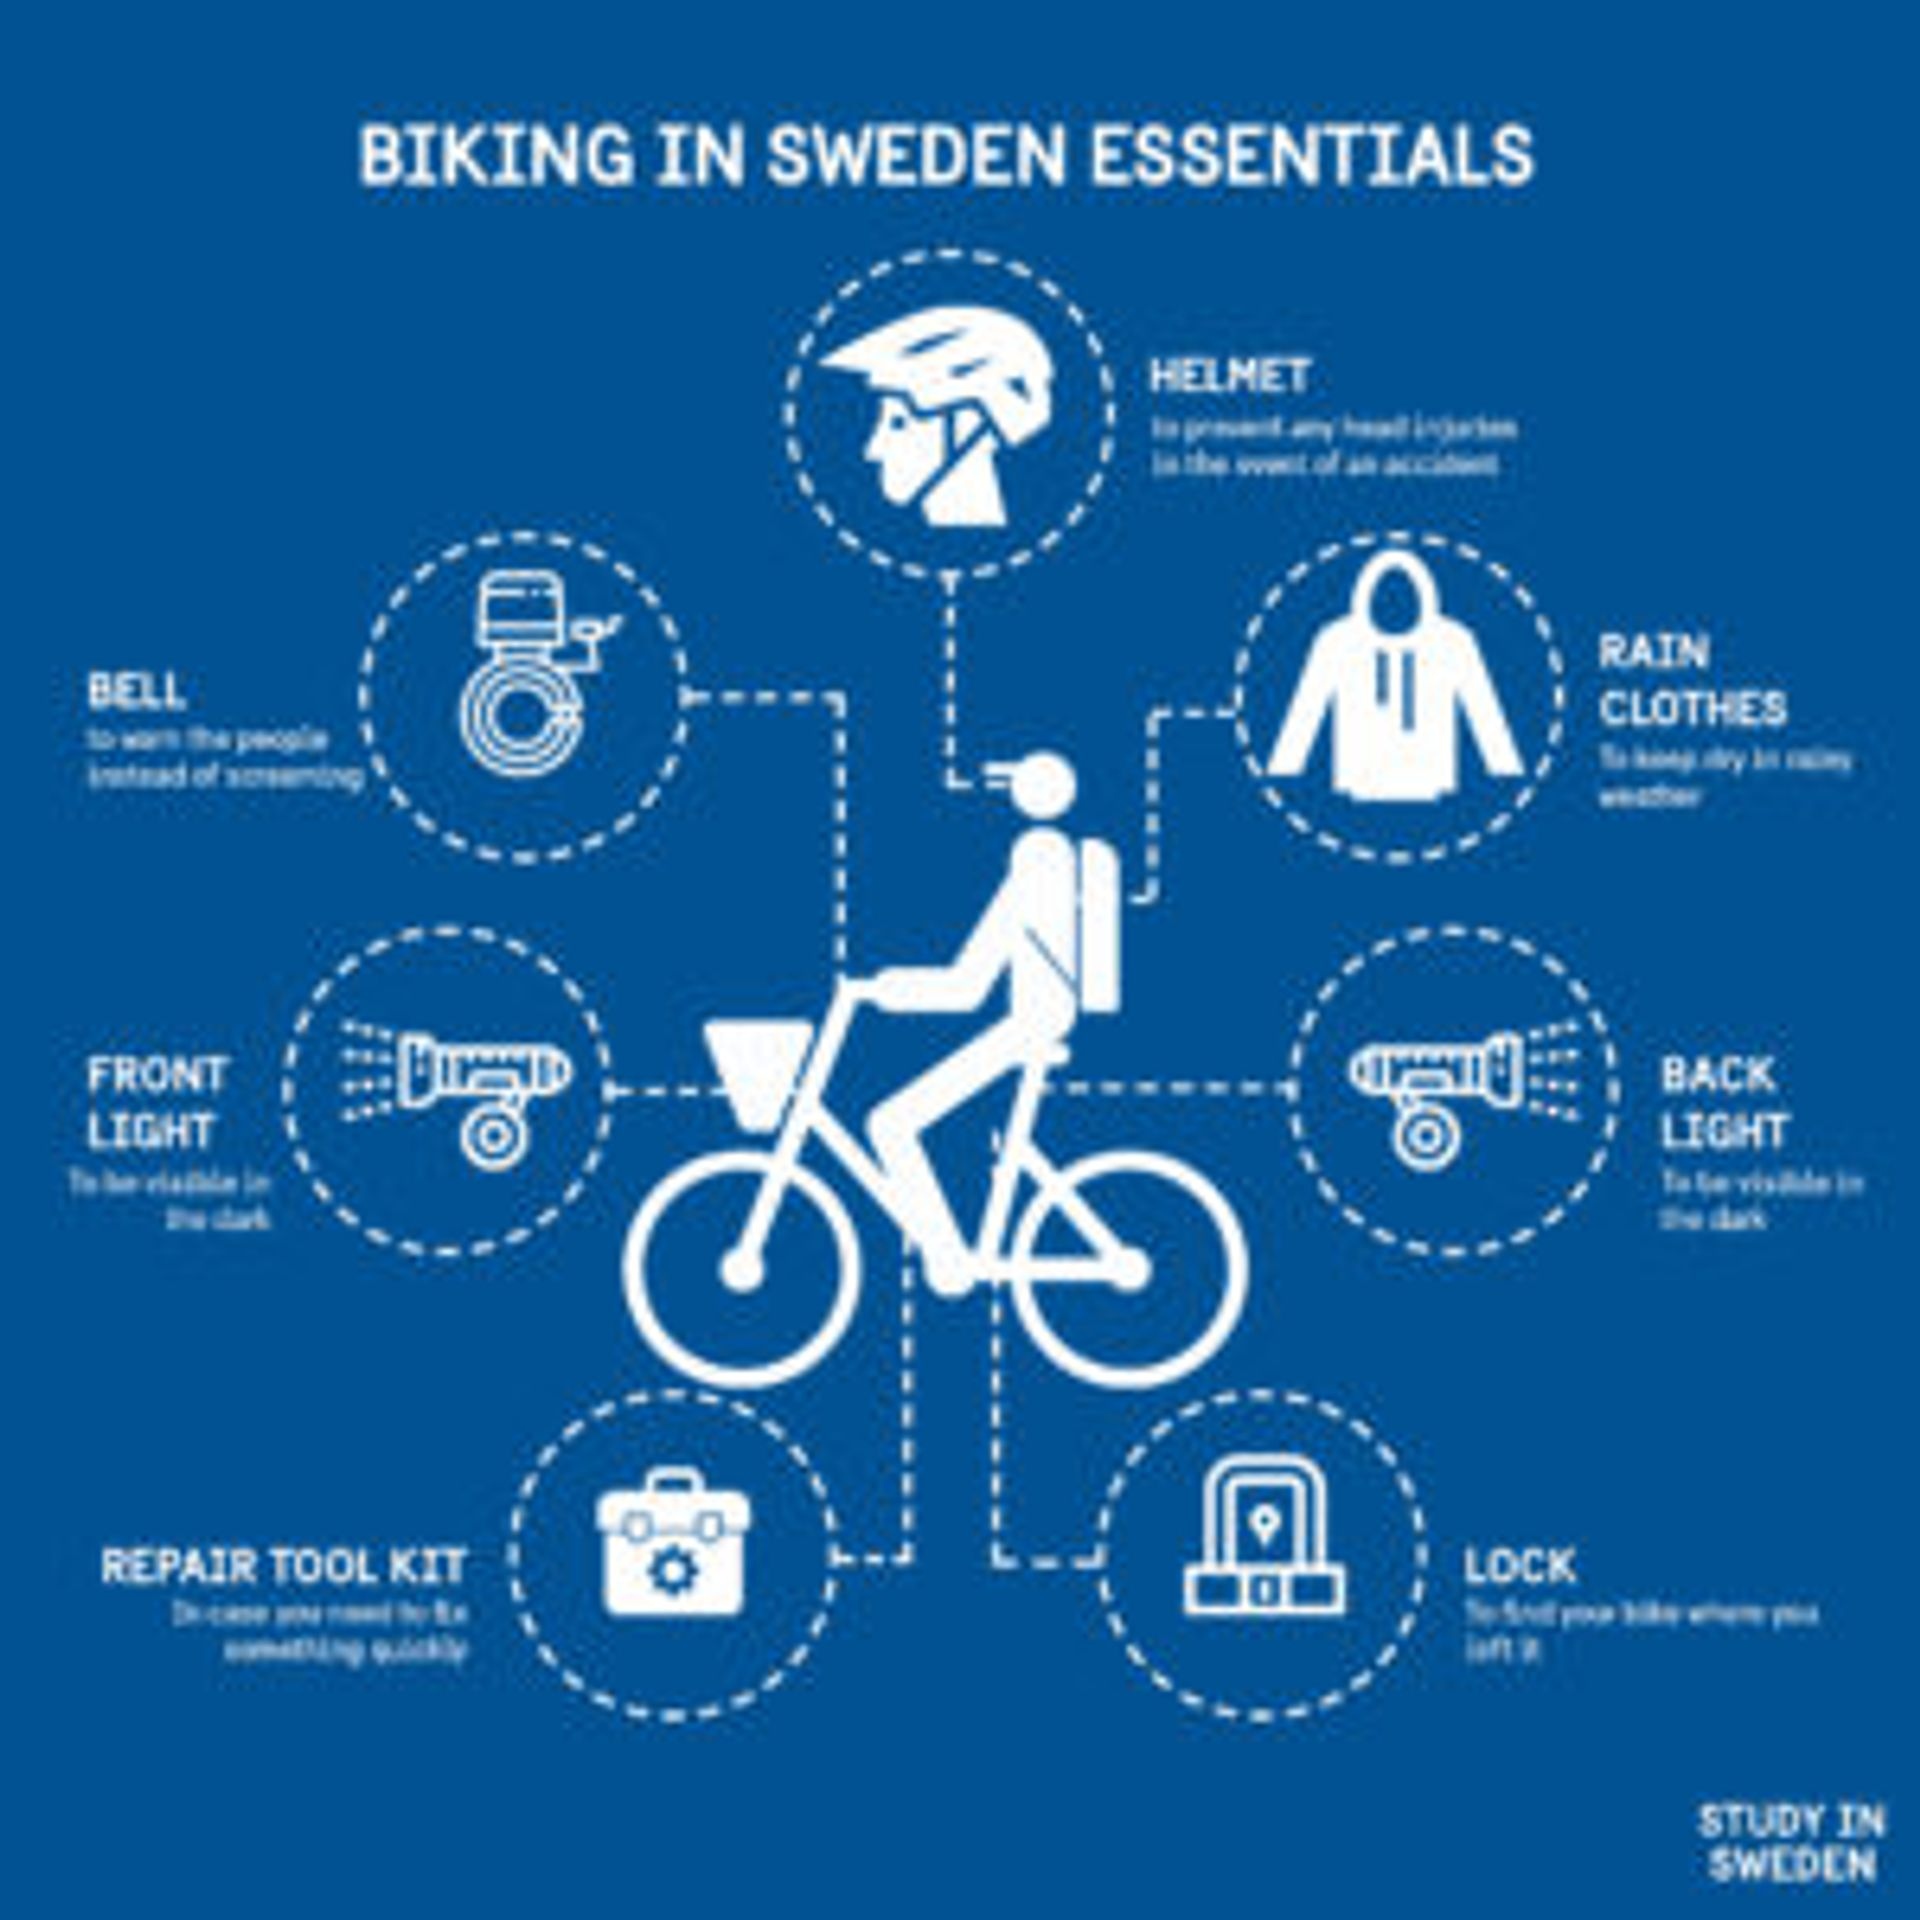 Biking in Sweden essentials.  Helmet: to prevent any injuries in the event of an accident.  Bell: to warn the people instead of screaming.  Front light: to be visible in the dark.  Repair tool kit: in case you need to fix something quickly.  Lock: to find your bike where you left it.  Back light: to be visible in the dark.  Rain clothes: in the event of rain to arrive dry.